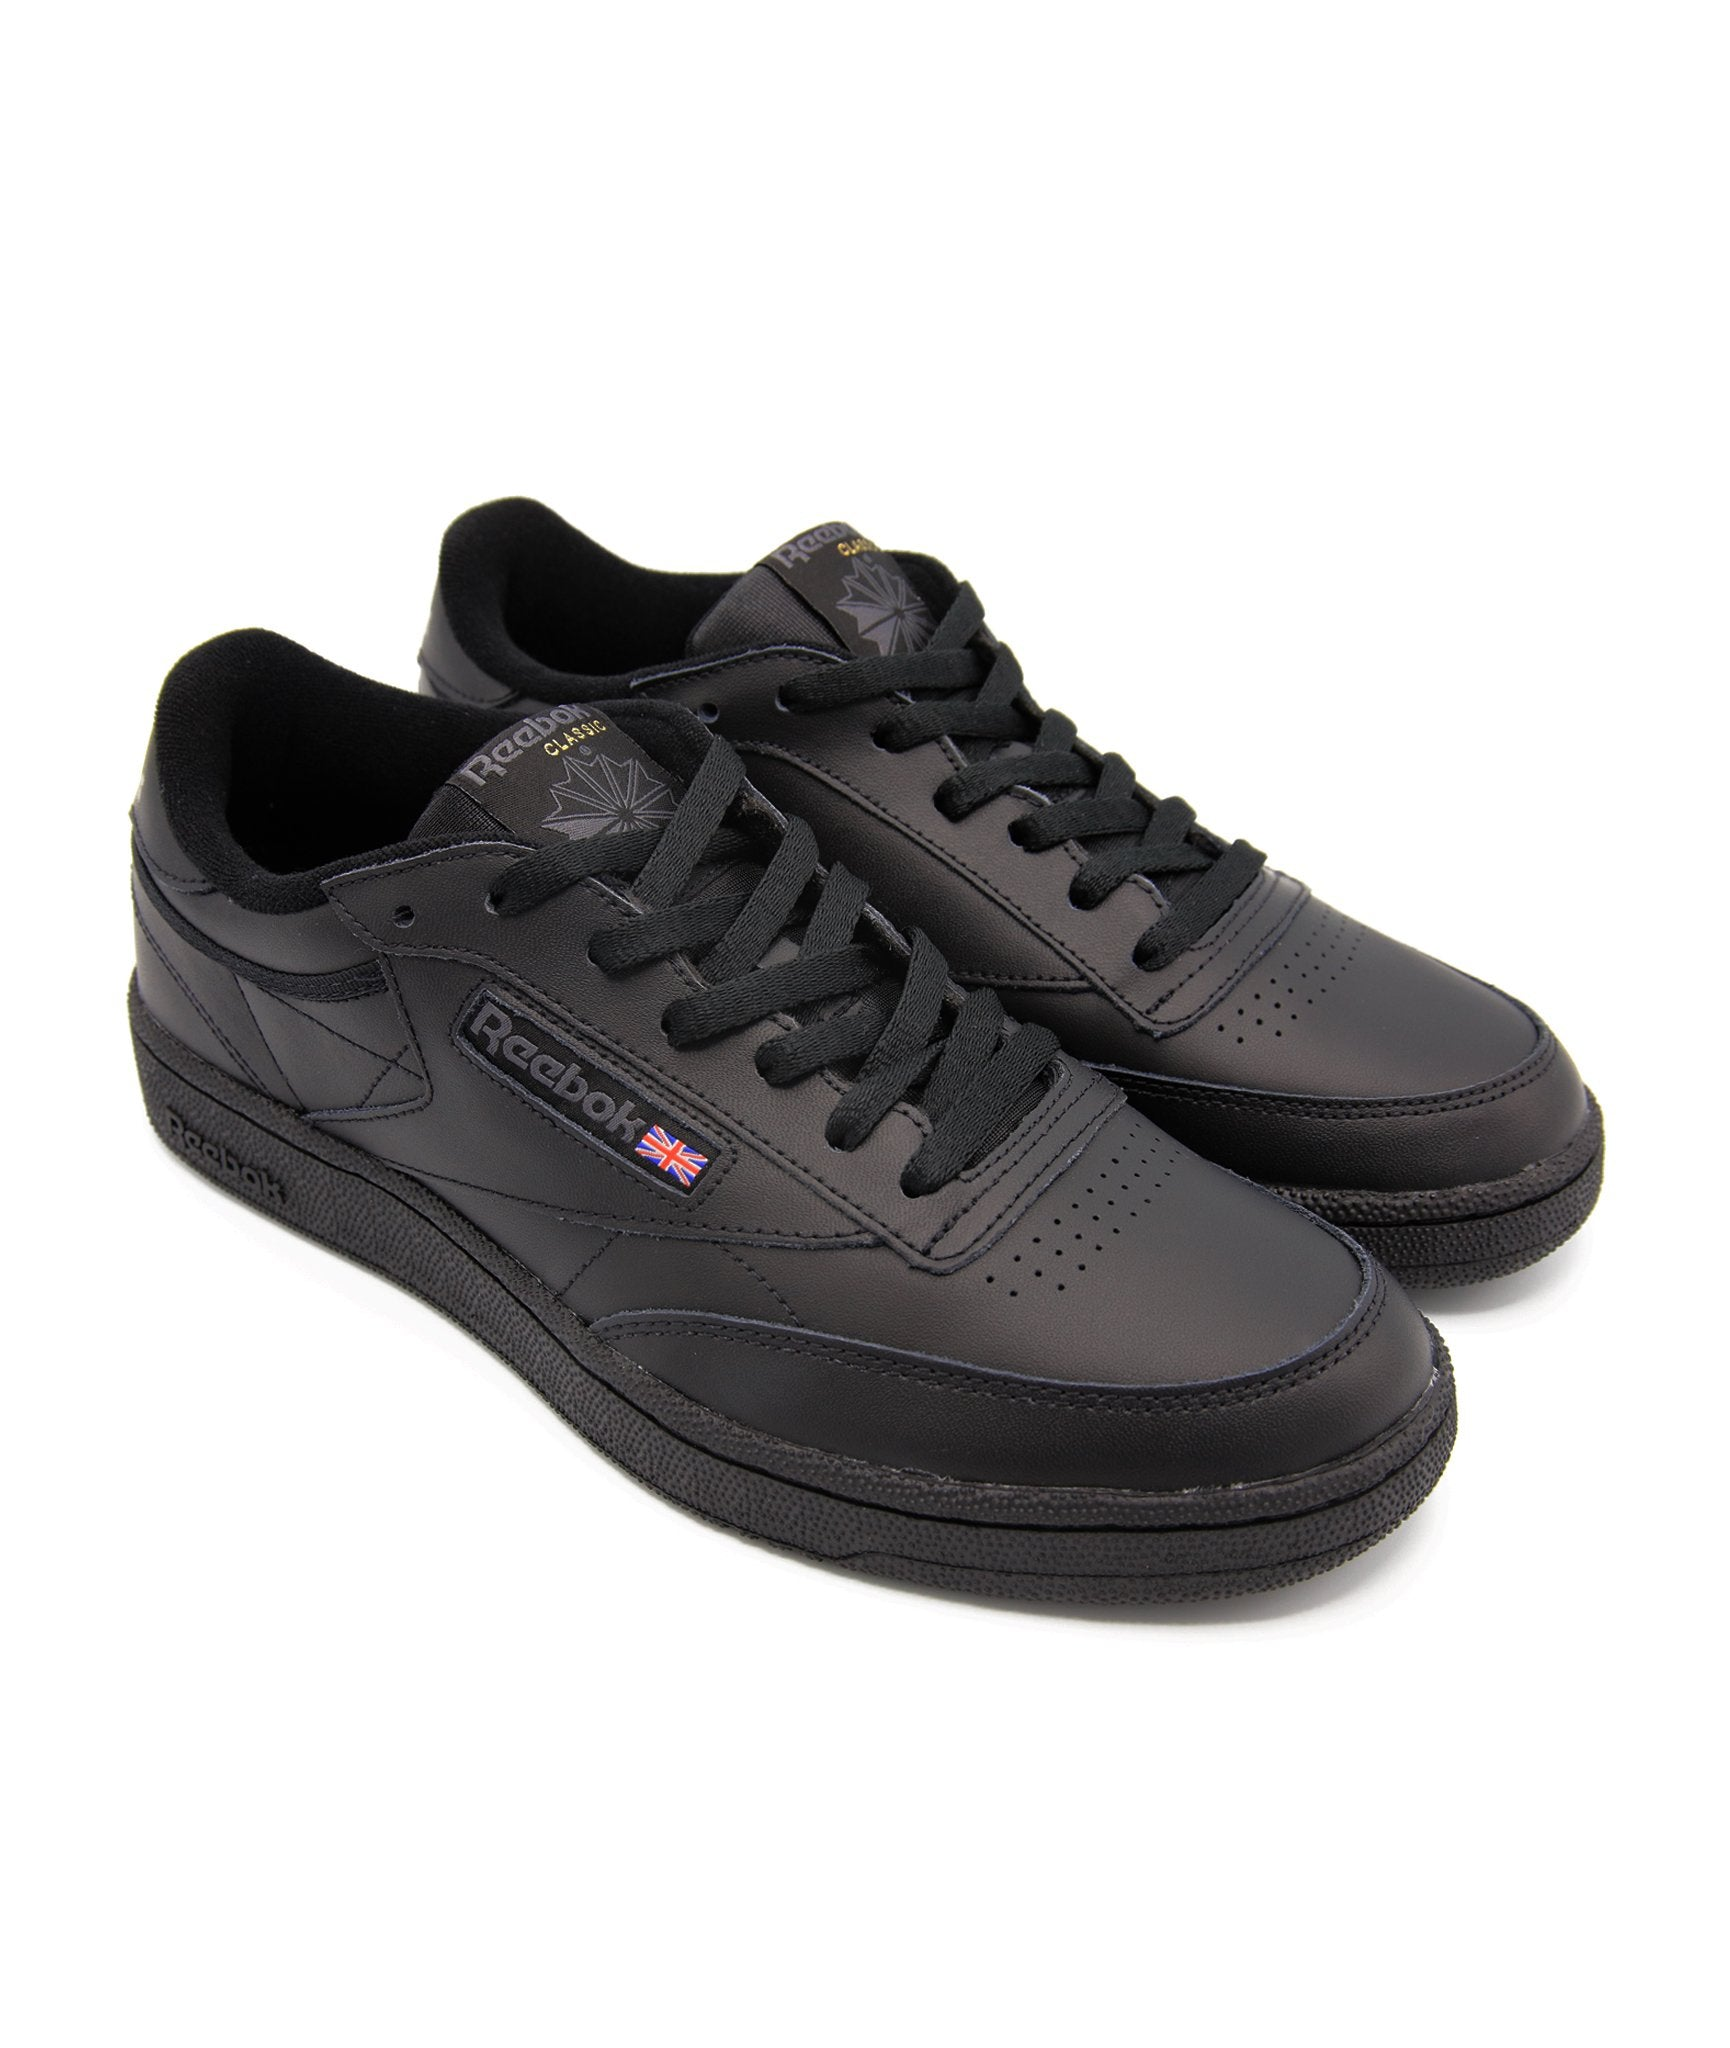 Reebok Club C 85 - Black